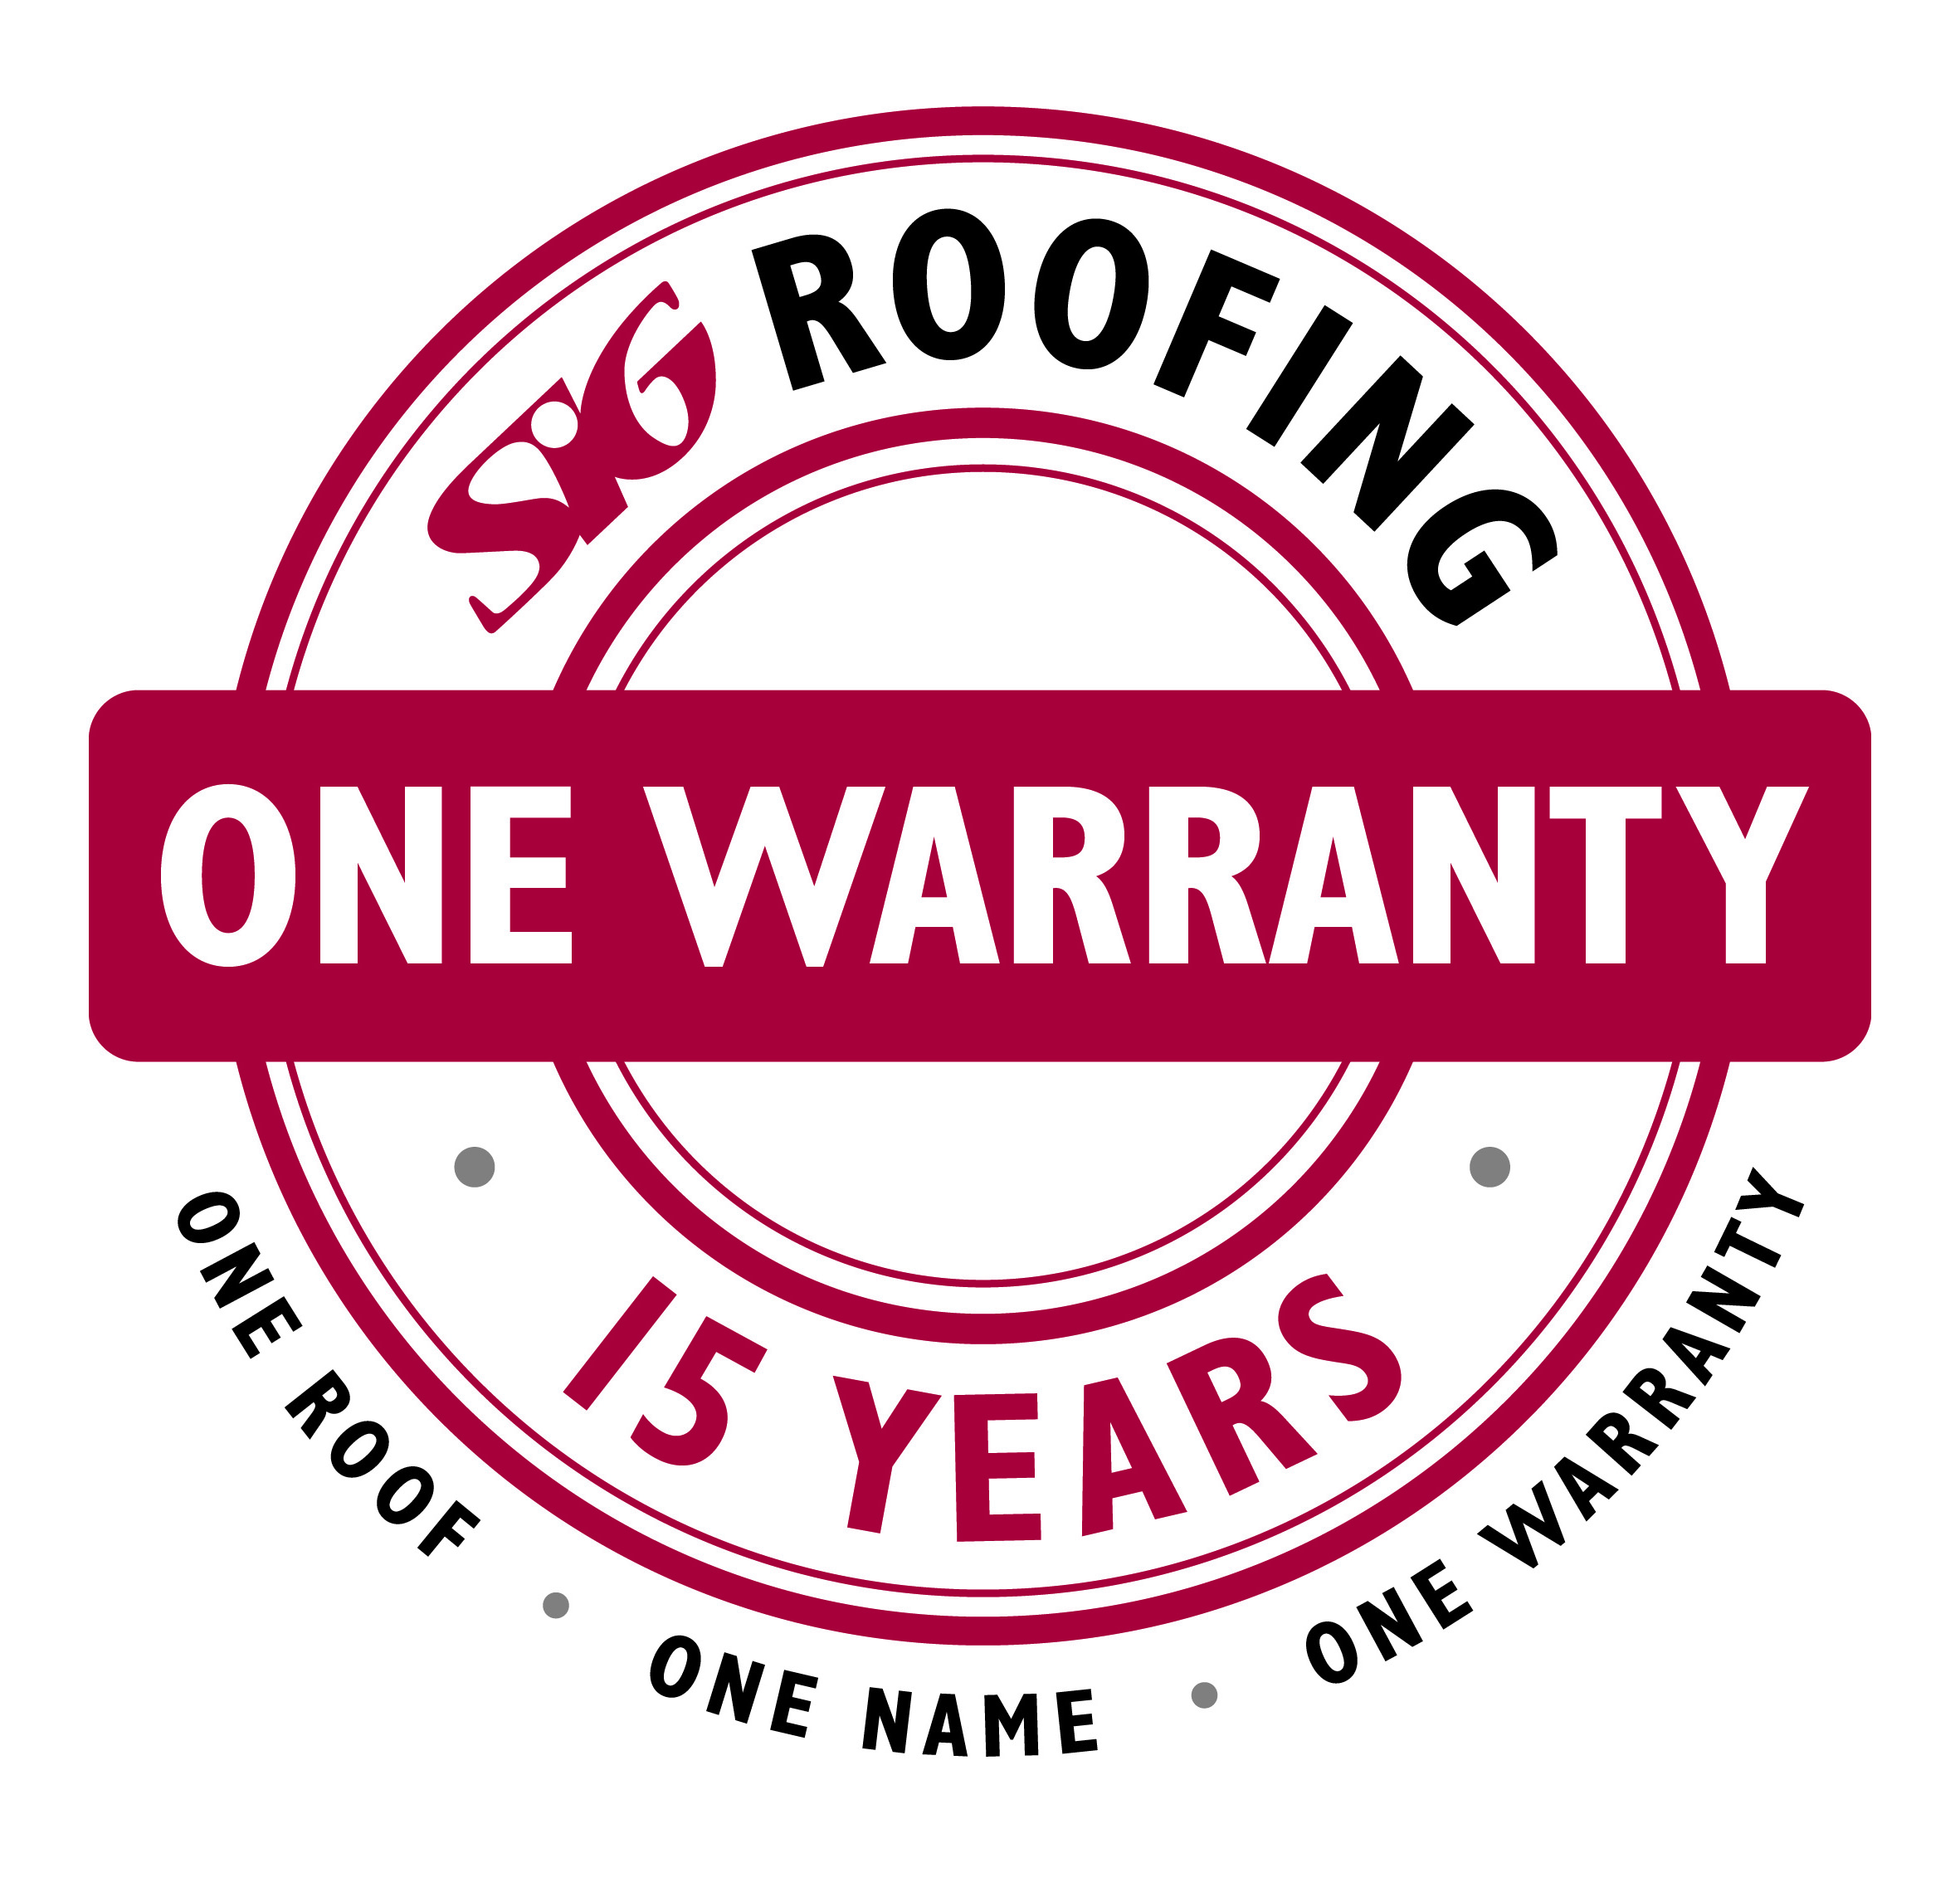 A question about roofing warrenties?